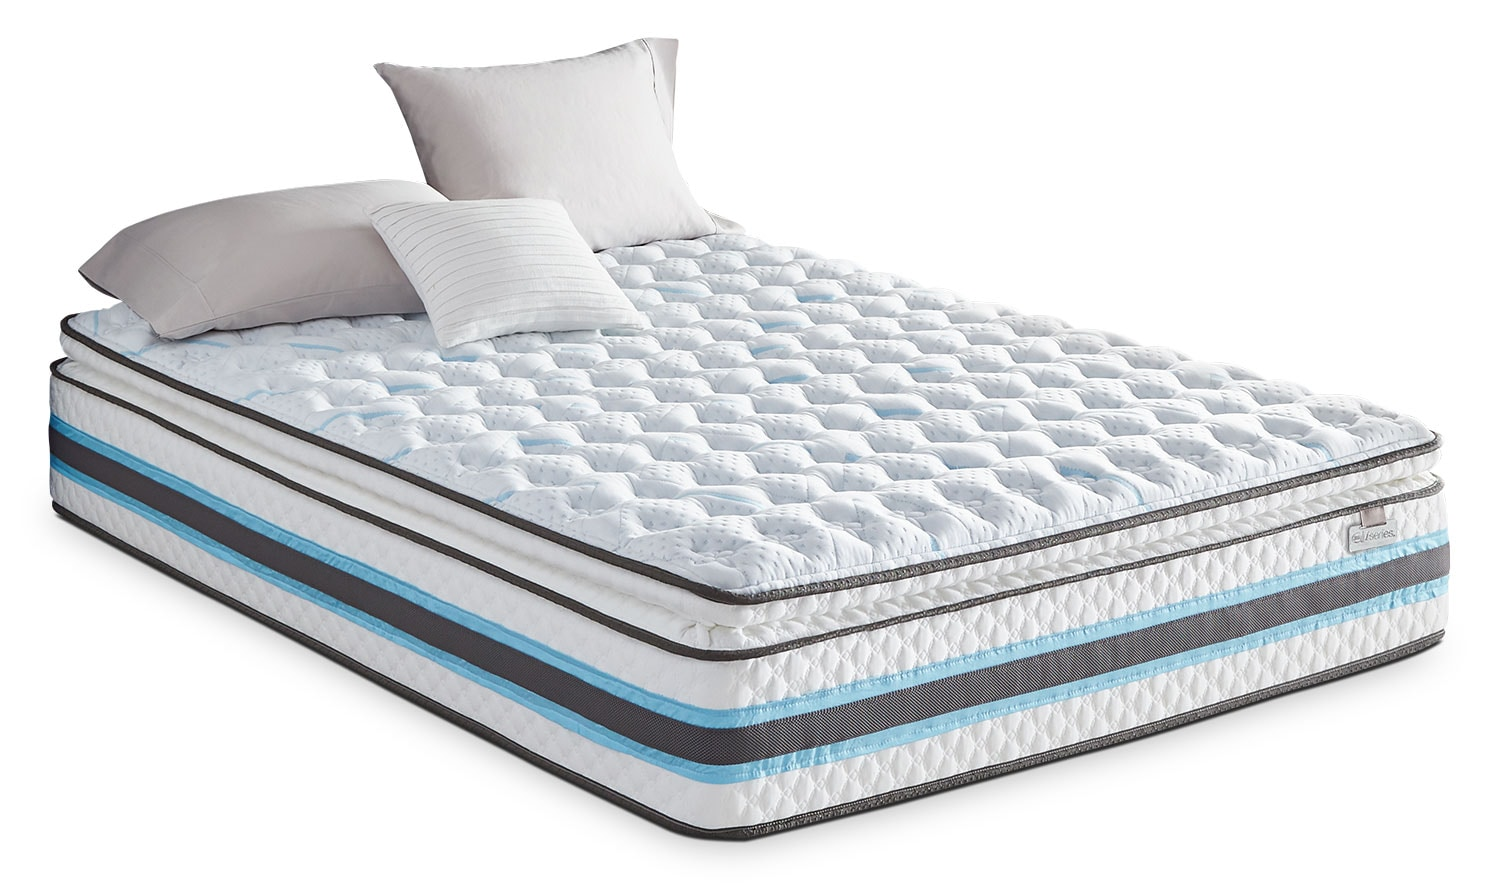 Mattresses and Bedding - Serta iSeries® Breathtaking Pillow-Top Plush Queen Mattress